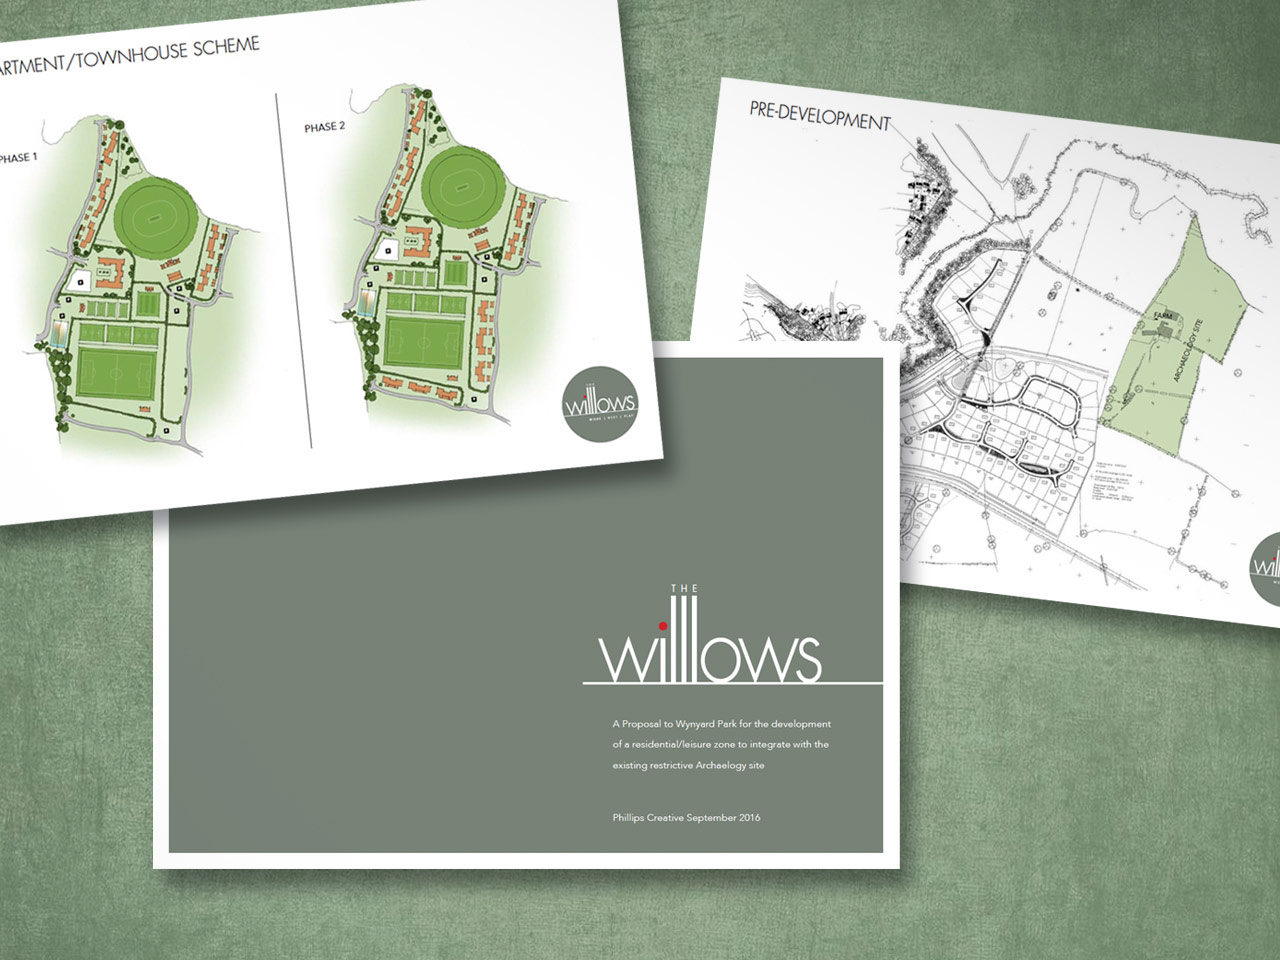 proposal visuals for The Willows